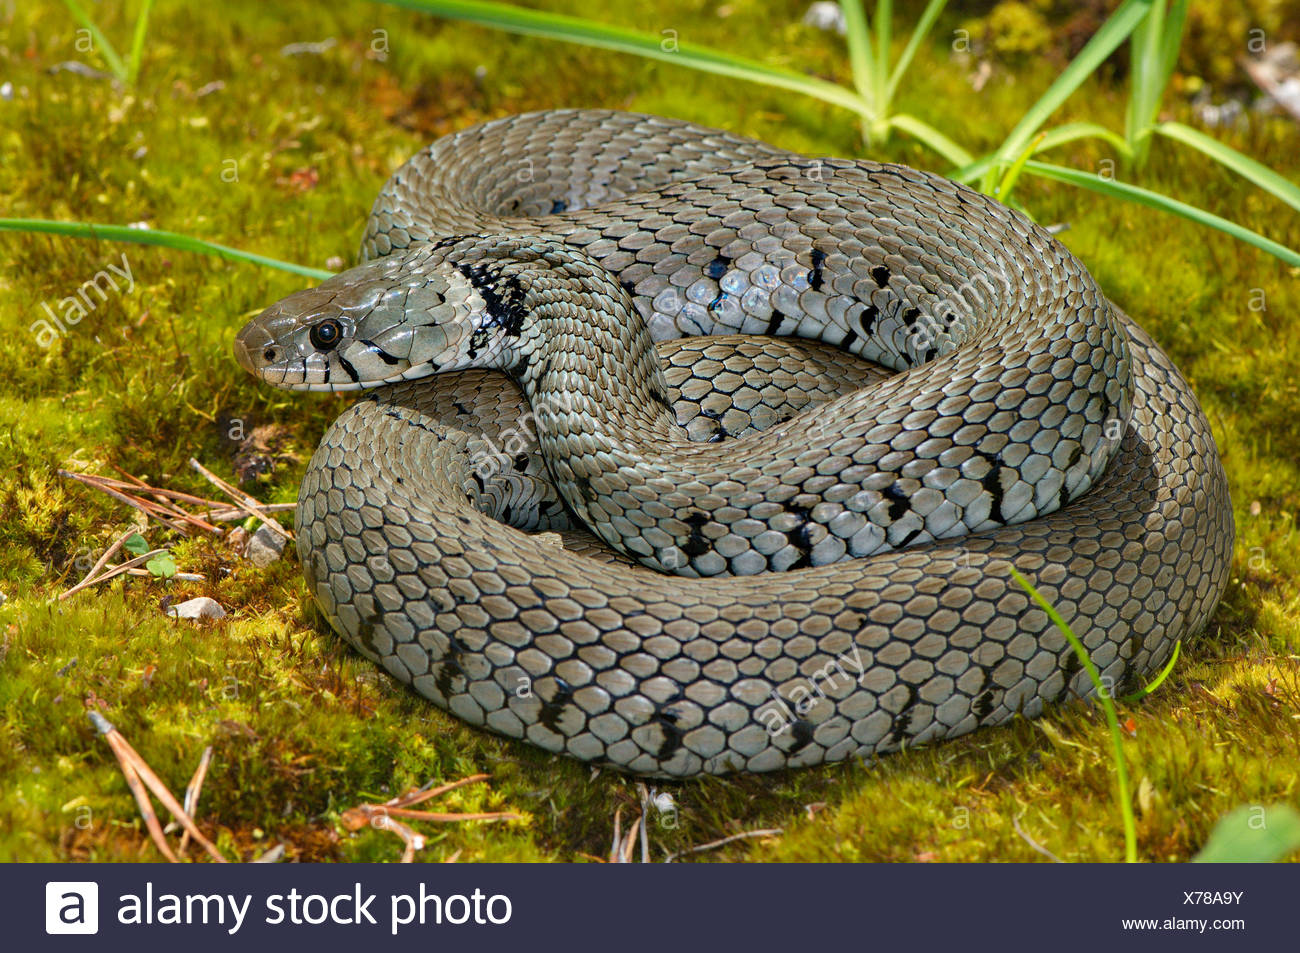 Grass snake, colubrid, colubrids, Natrix natrix helvetica, snake, snakes, reptile, reptiles, general view, protected, endangered - Stock Image